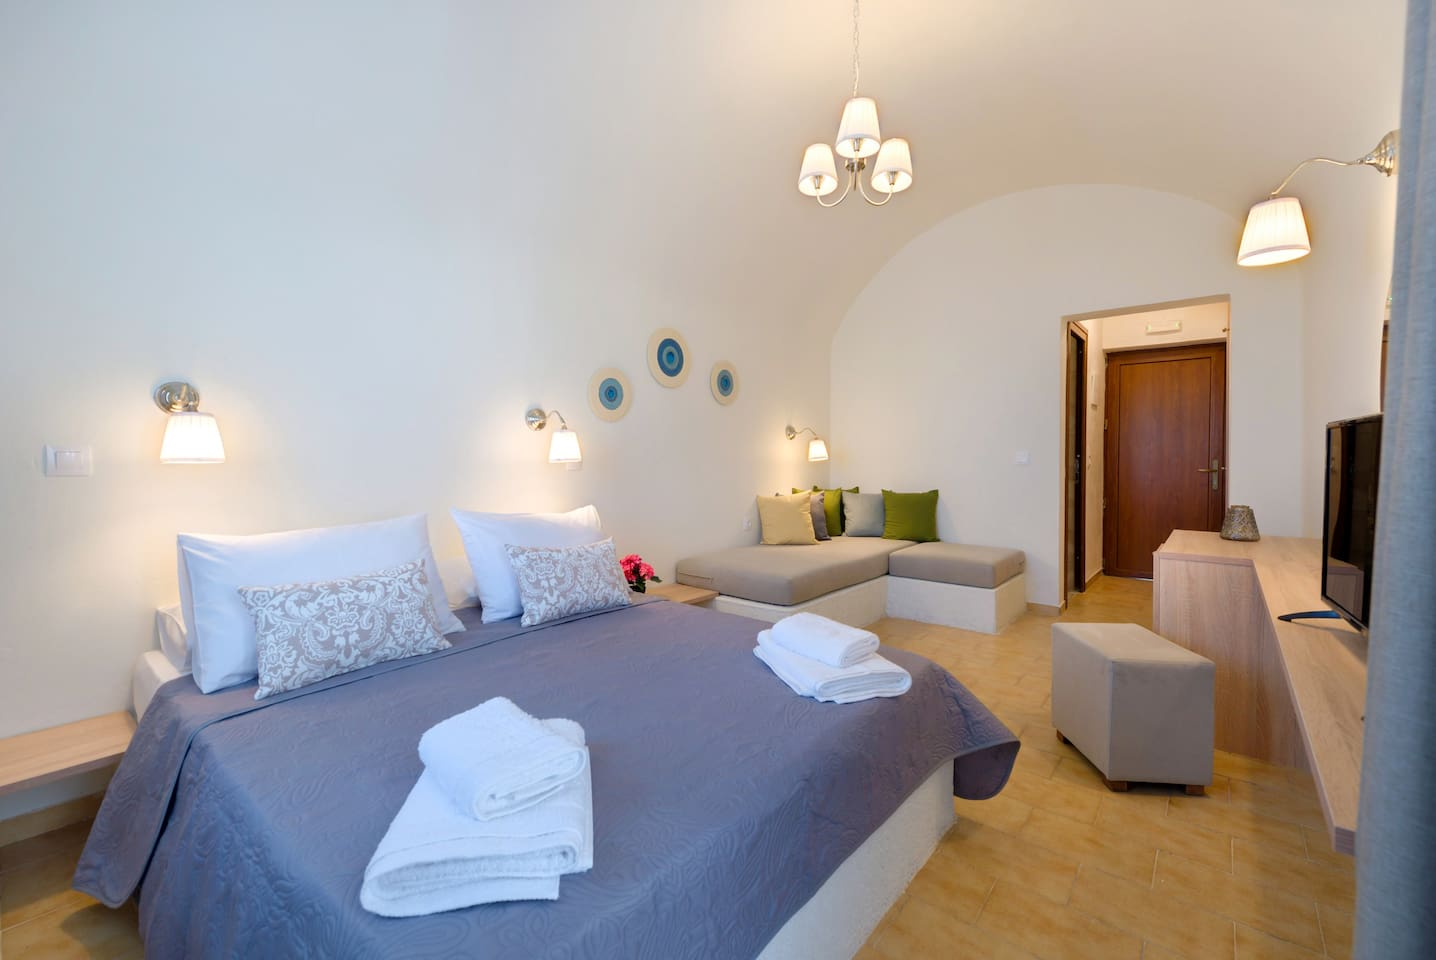 Alexander's Great View : Paros Room-21 m²